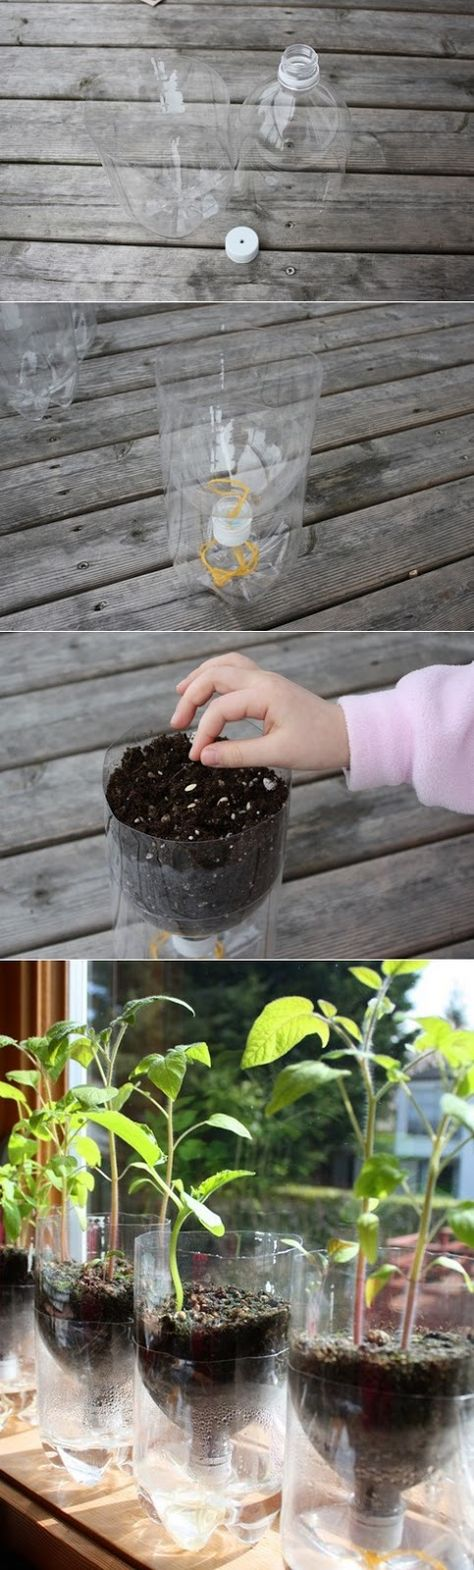 Alternative Gardning: Self Watering Containers